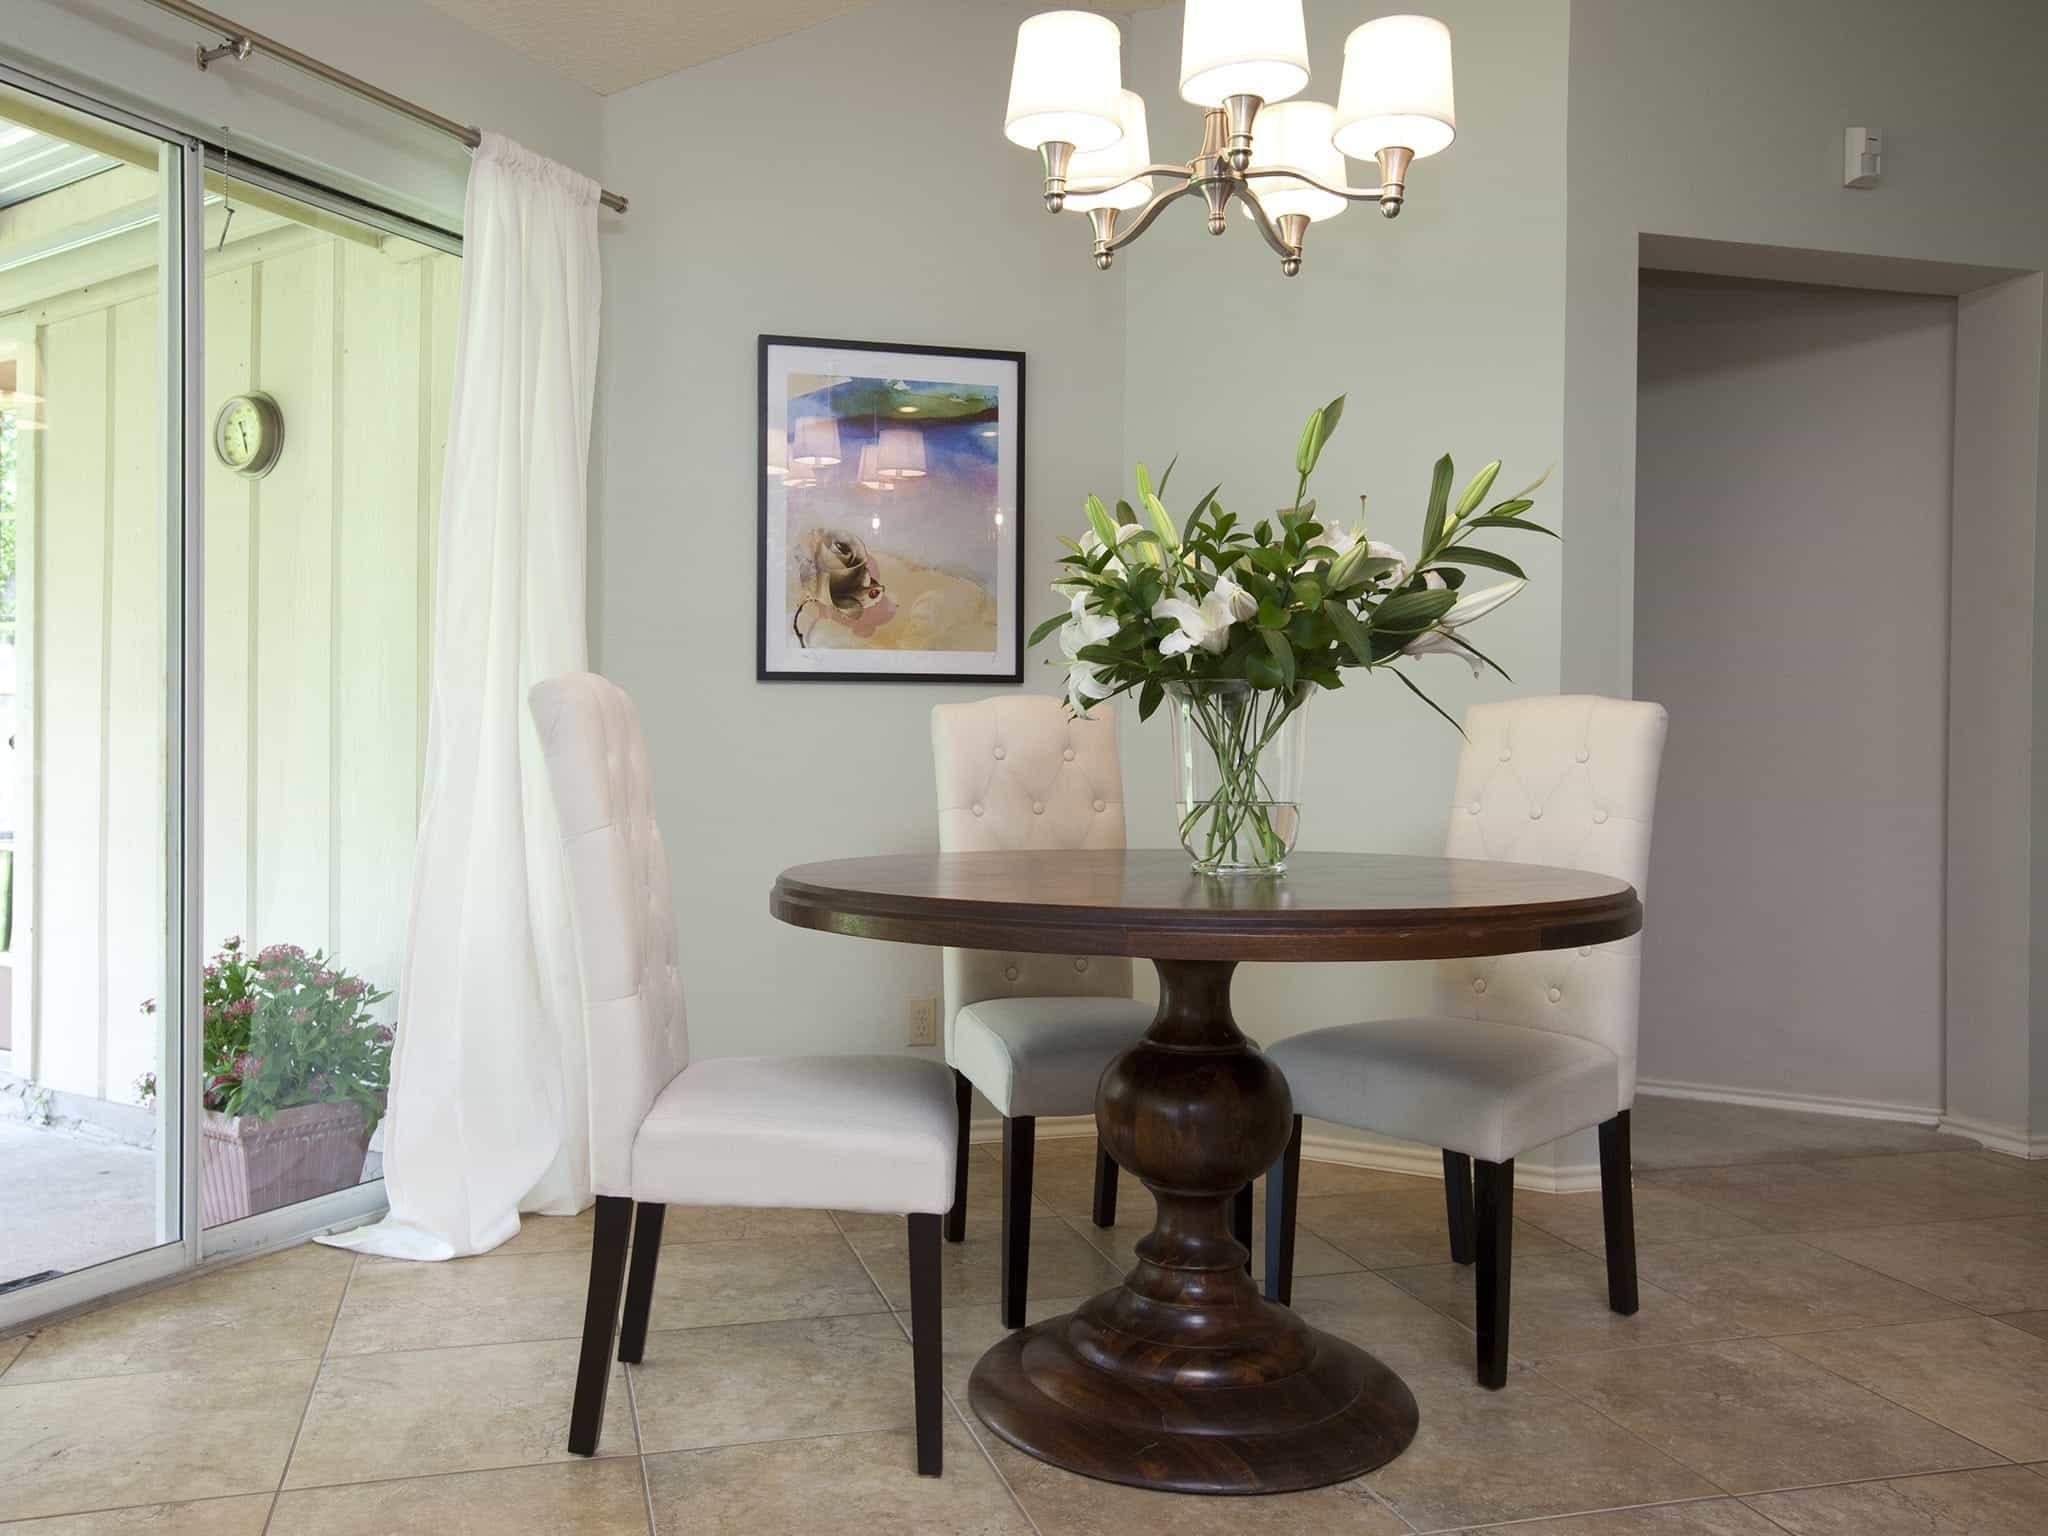 Simple Romantic Dining Room With Tufted Chairs (View 4 of 21)